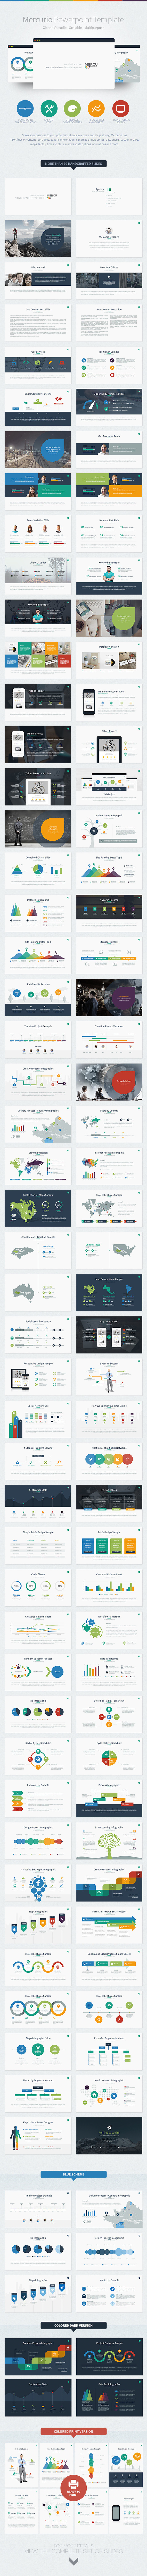 Presentation & Powerpoint Templates from GraphicRiver